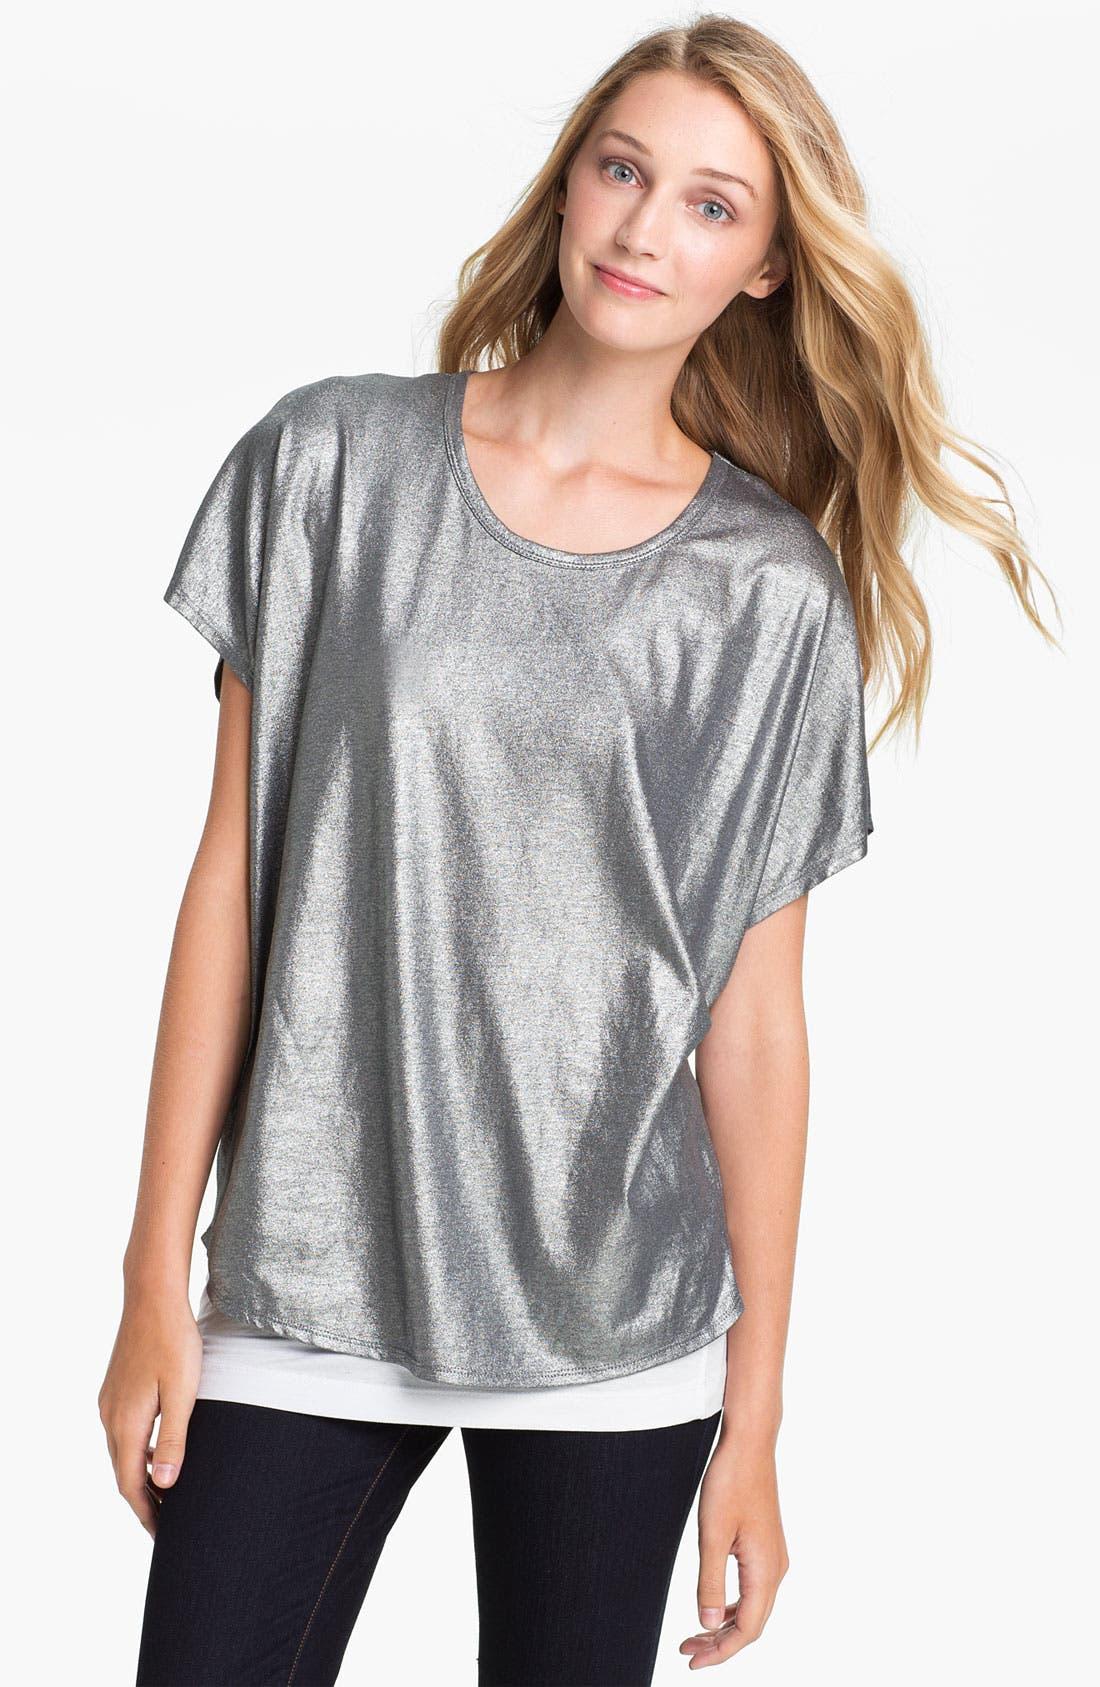 Alternate Image 1 Selected - Two by Vince Camuto Slouchy Foil Tee